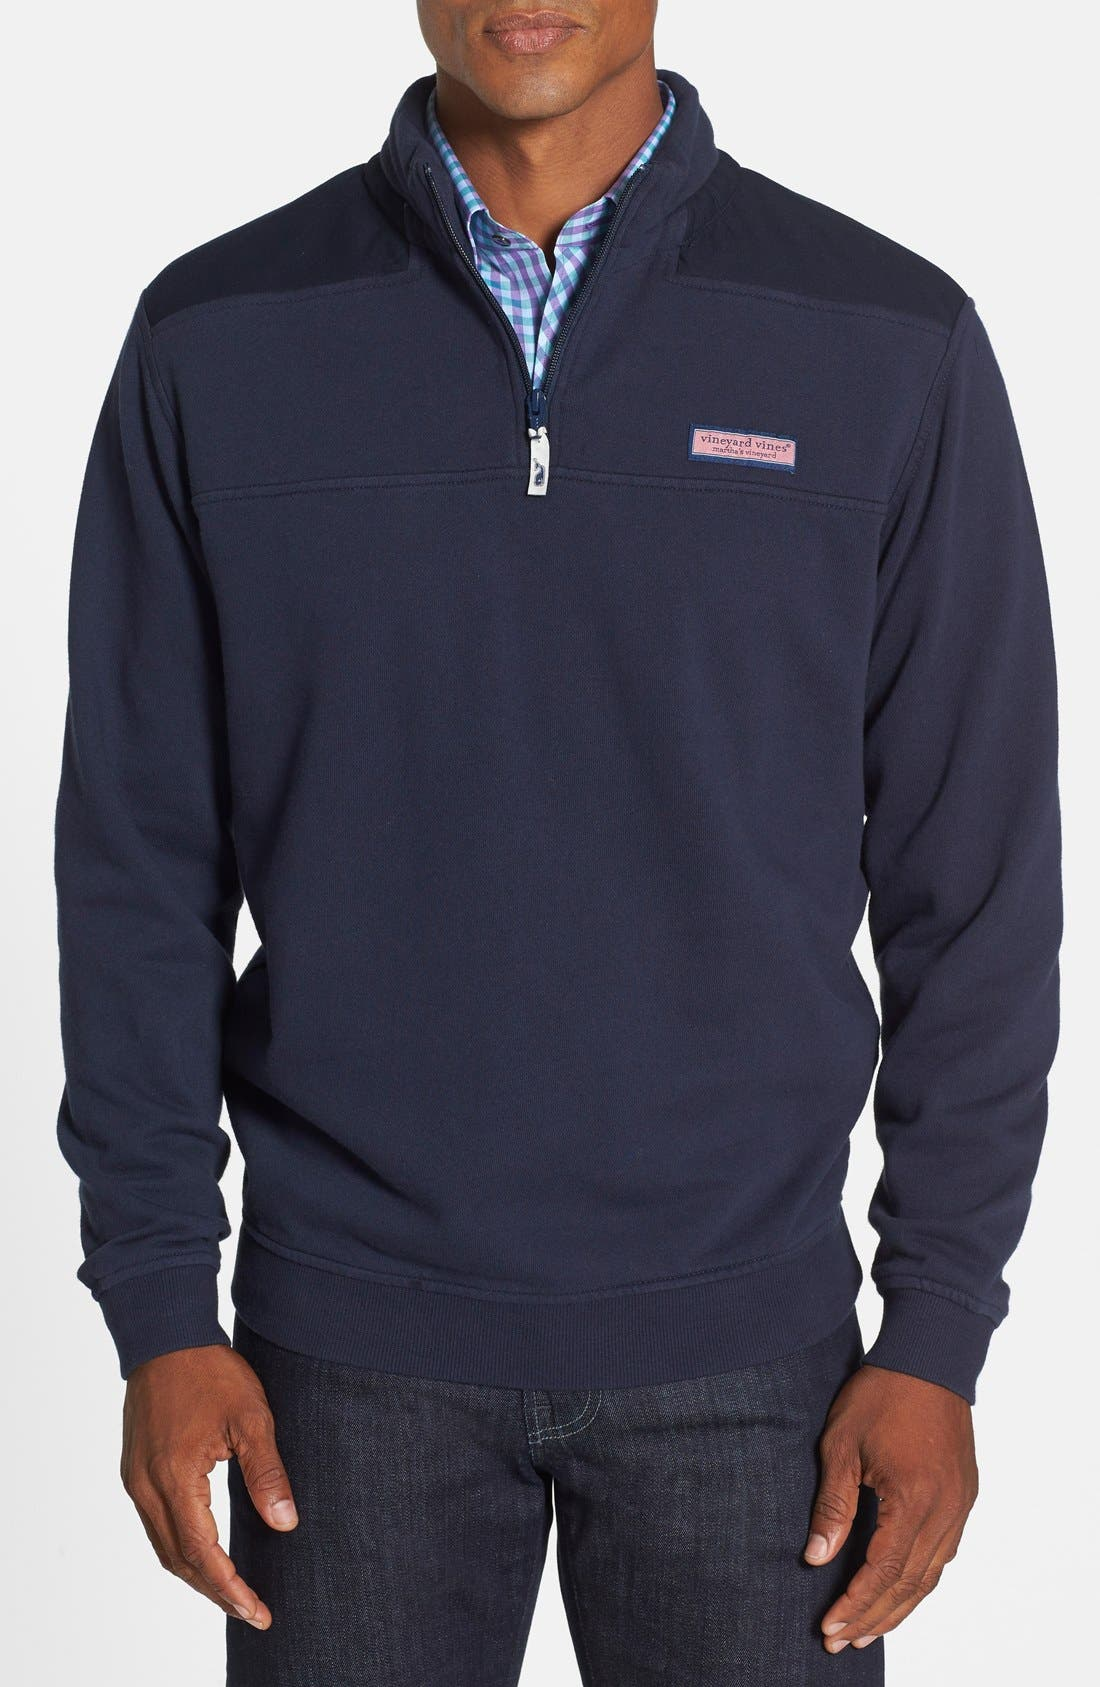 Vineyard Vines 'Shep' Quarter Zip Pullover Sweatshirt